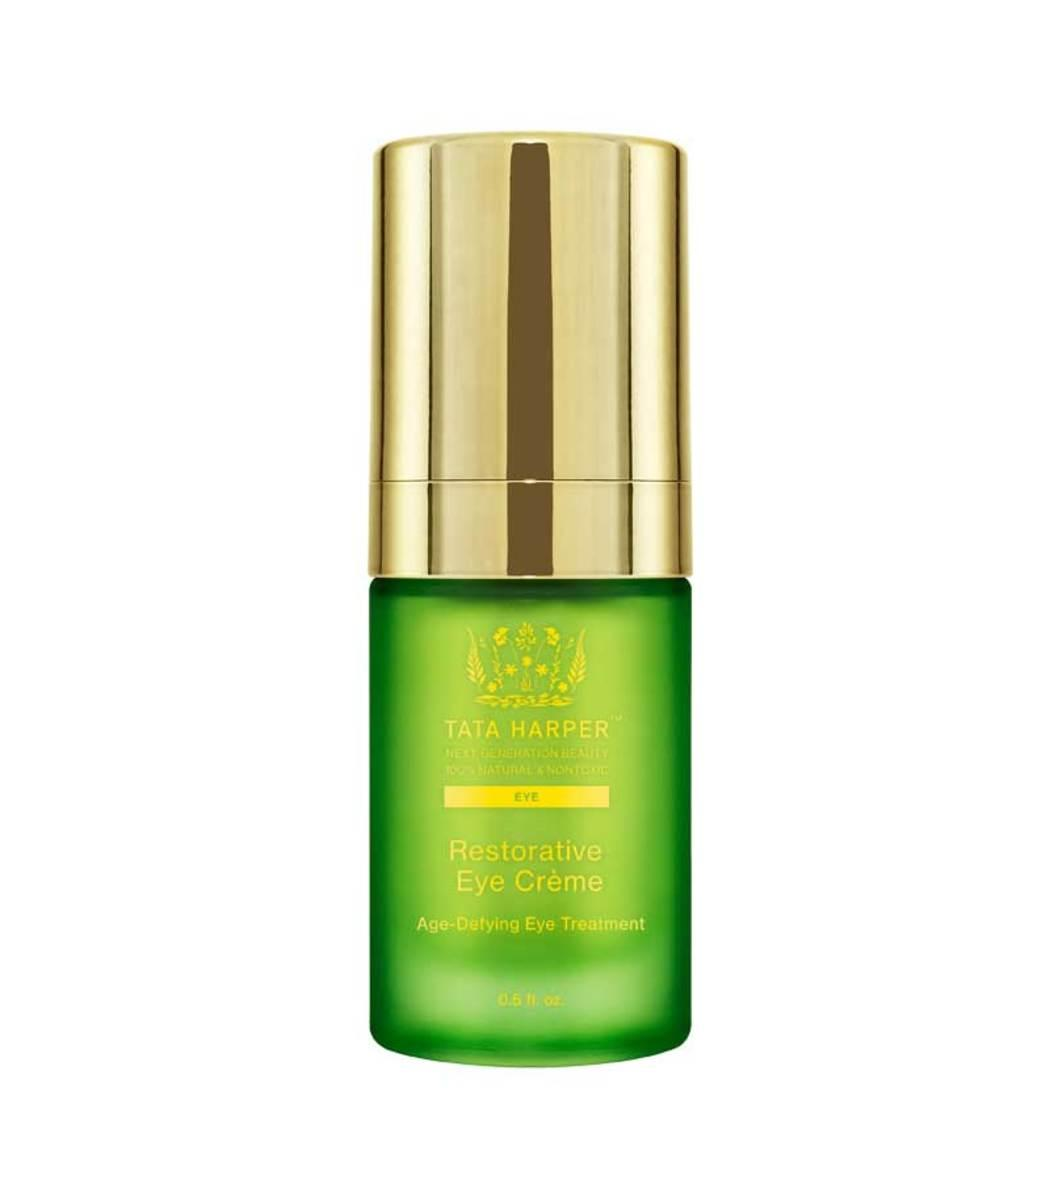 Tata Harper Restorative Eye Creme In N/a